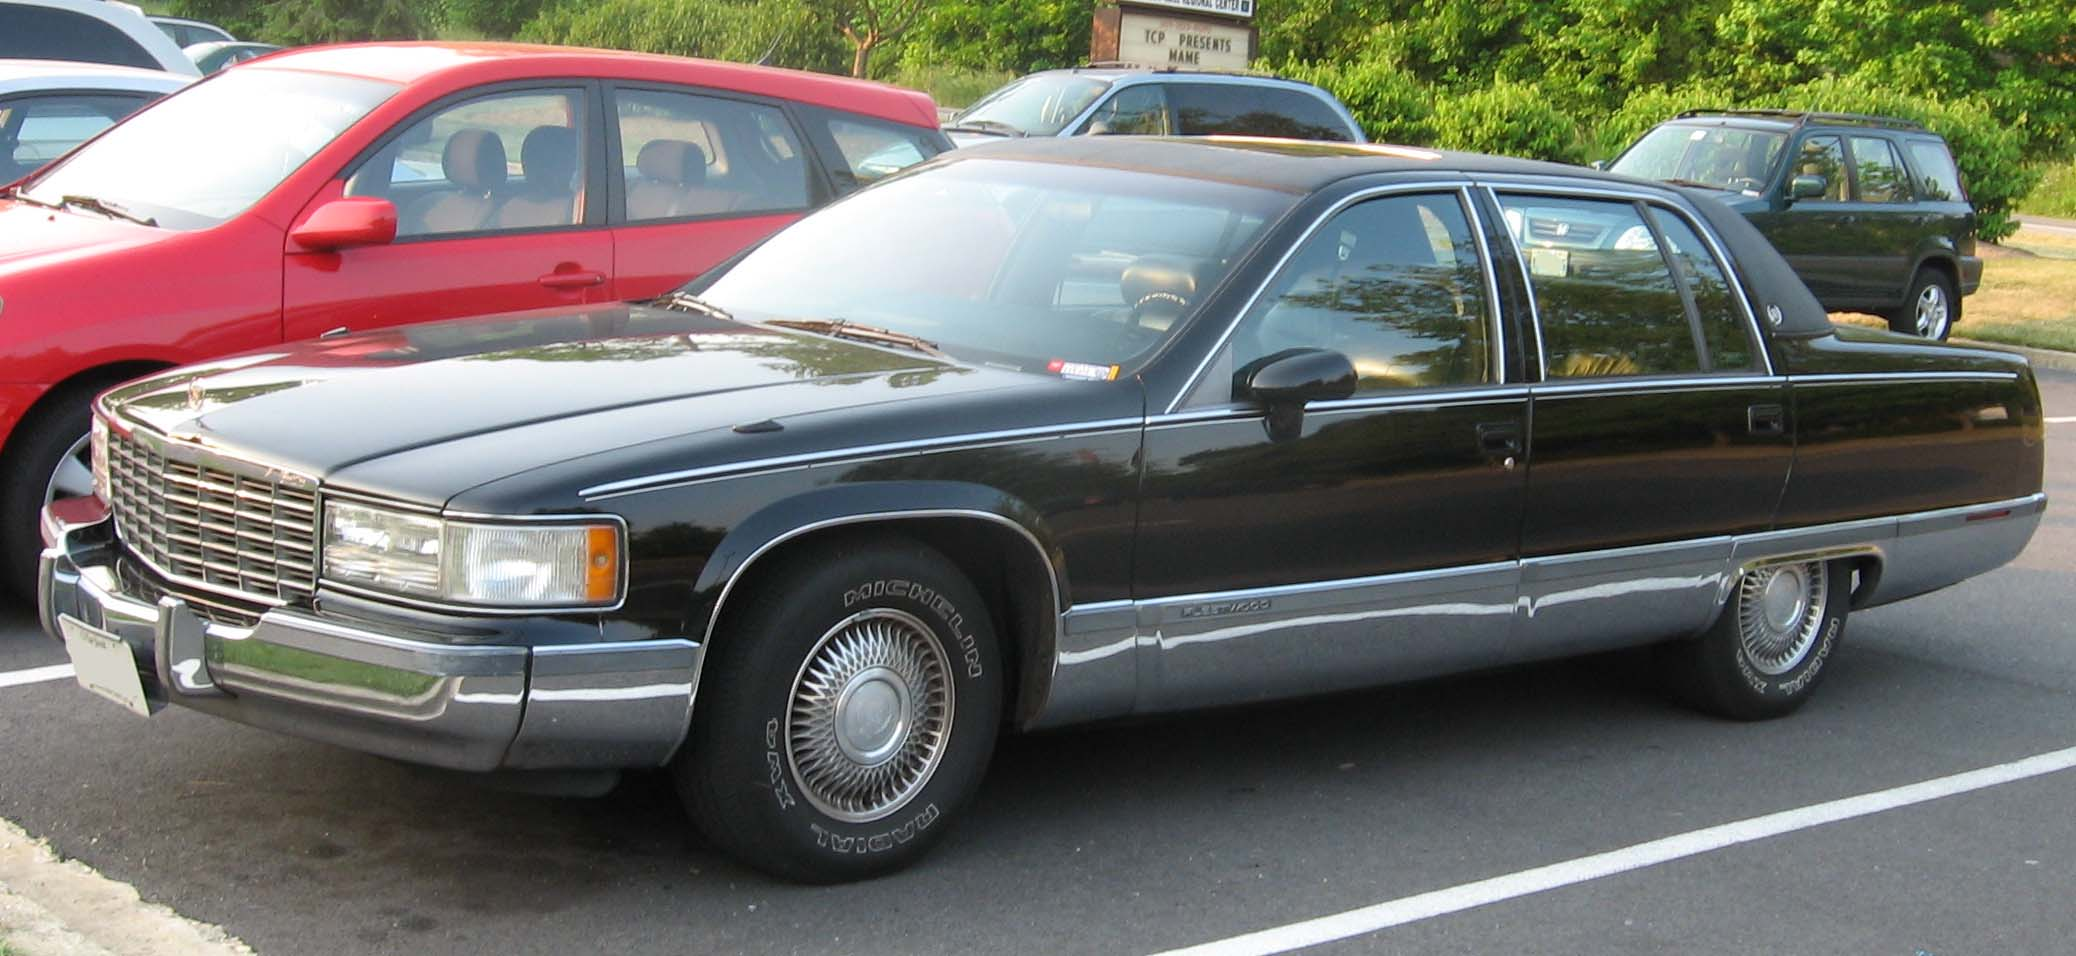 File:93-96 Cadillac Fleetwood.jpg - Wikipedia, the free encyclopedia